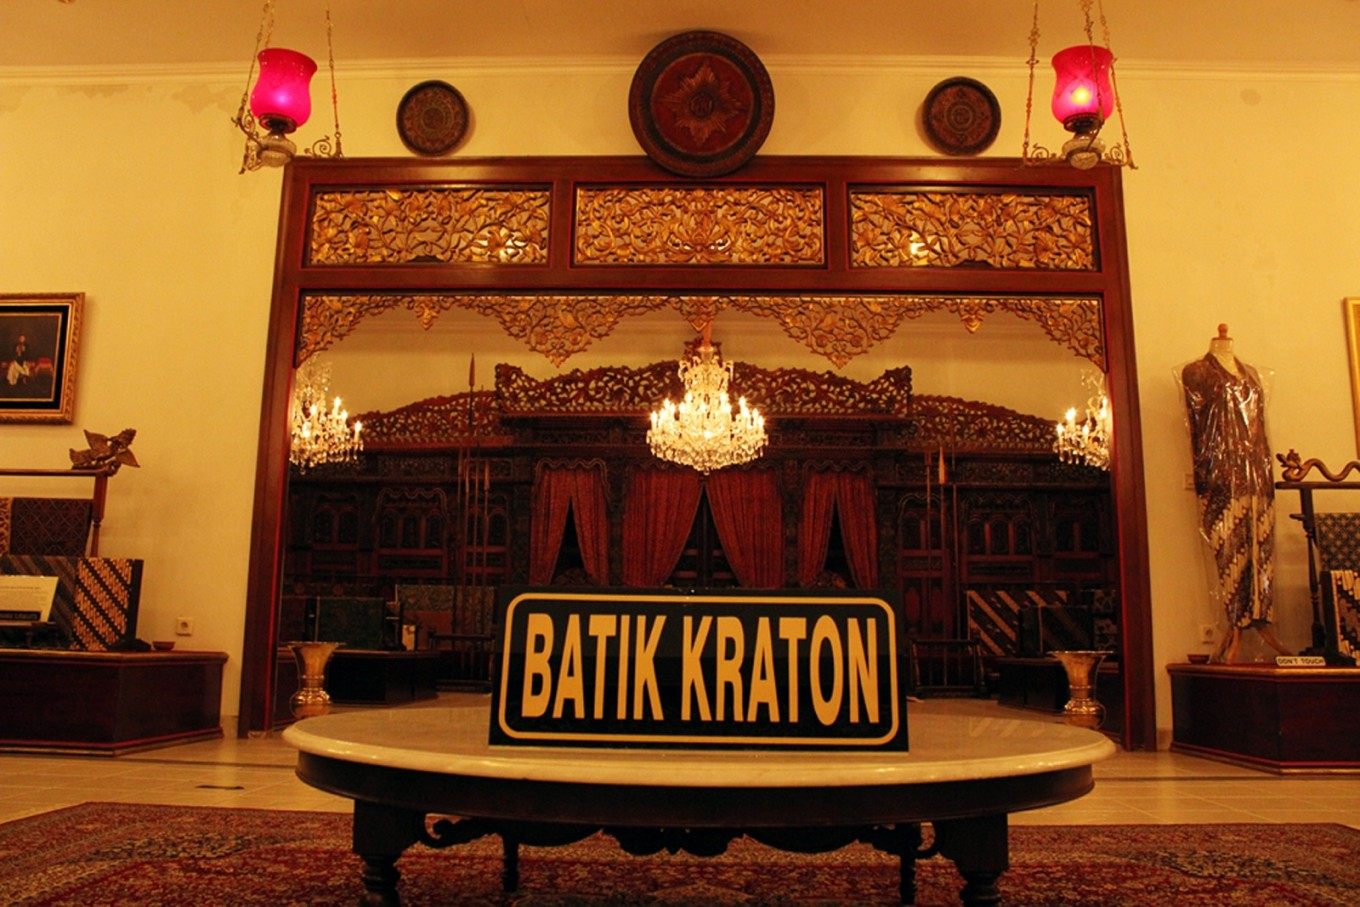 The collection of Batik Kraton (palace batik) at the Dalem Wuryaningratan Museum.